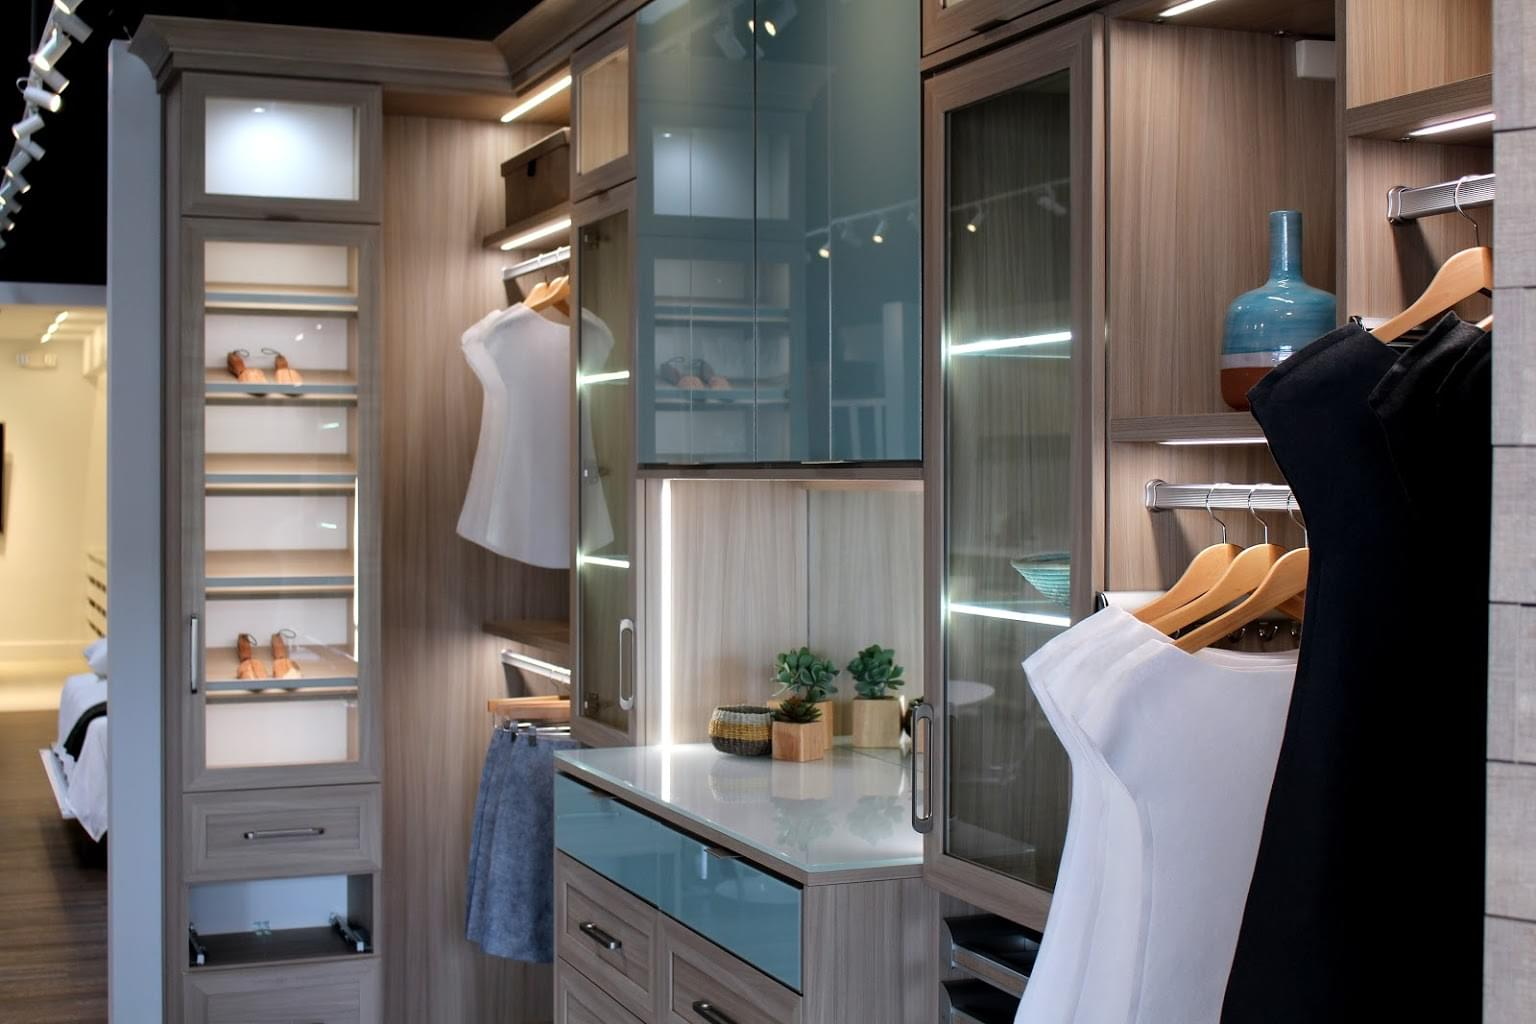 California Closets Interior Designer in Santa Monica, CA